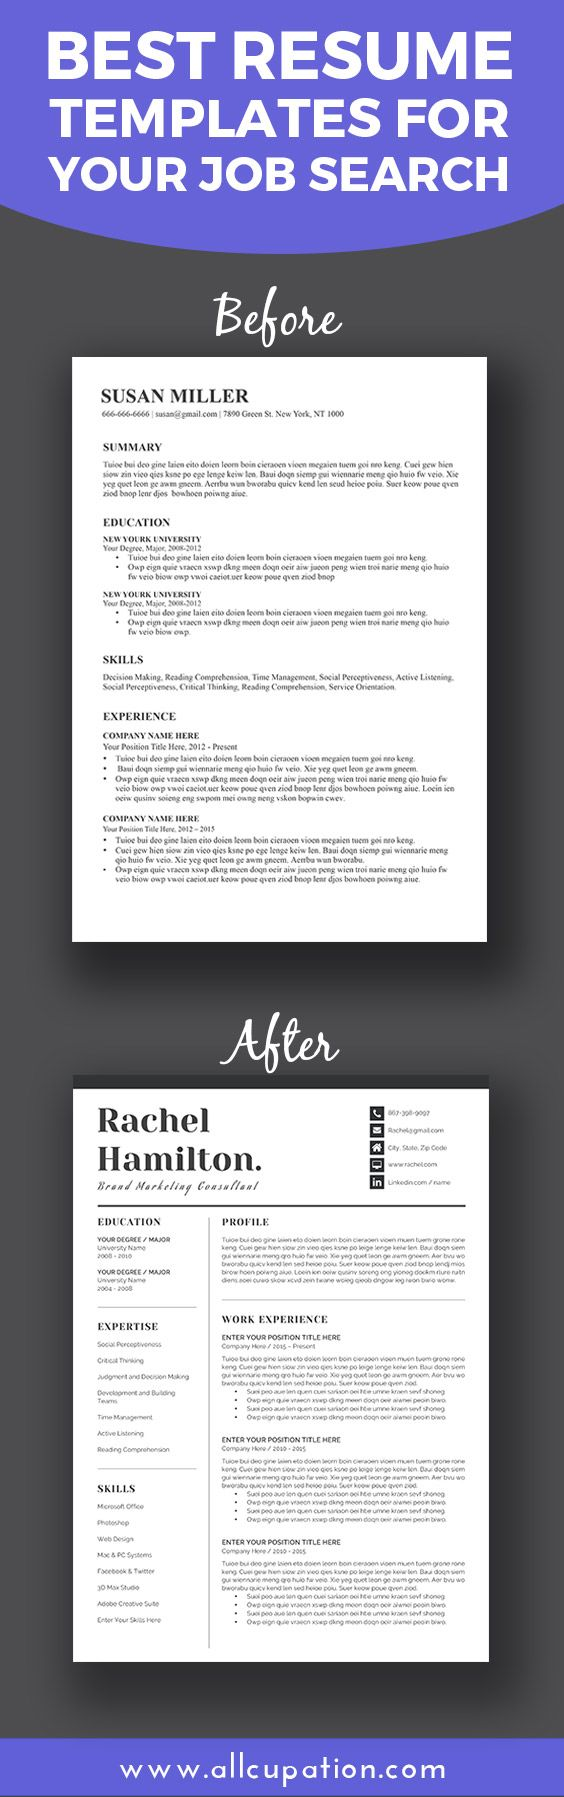 cv and resume format%0A Best resume templates for your job search  Visit www allcupation com for  more  Best Resume TemplateCv